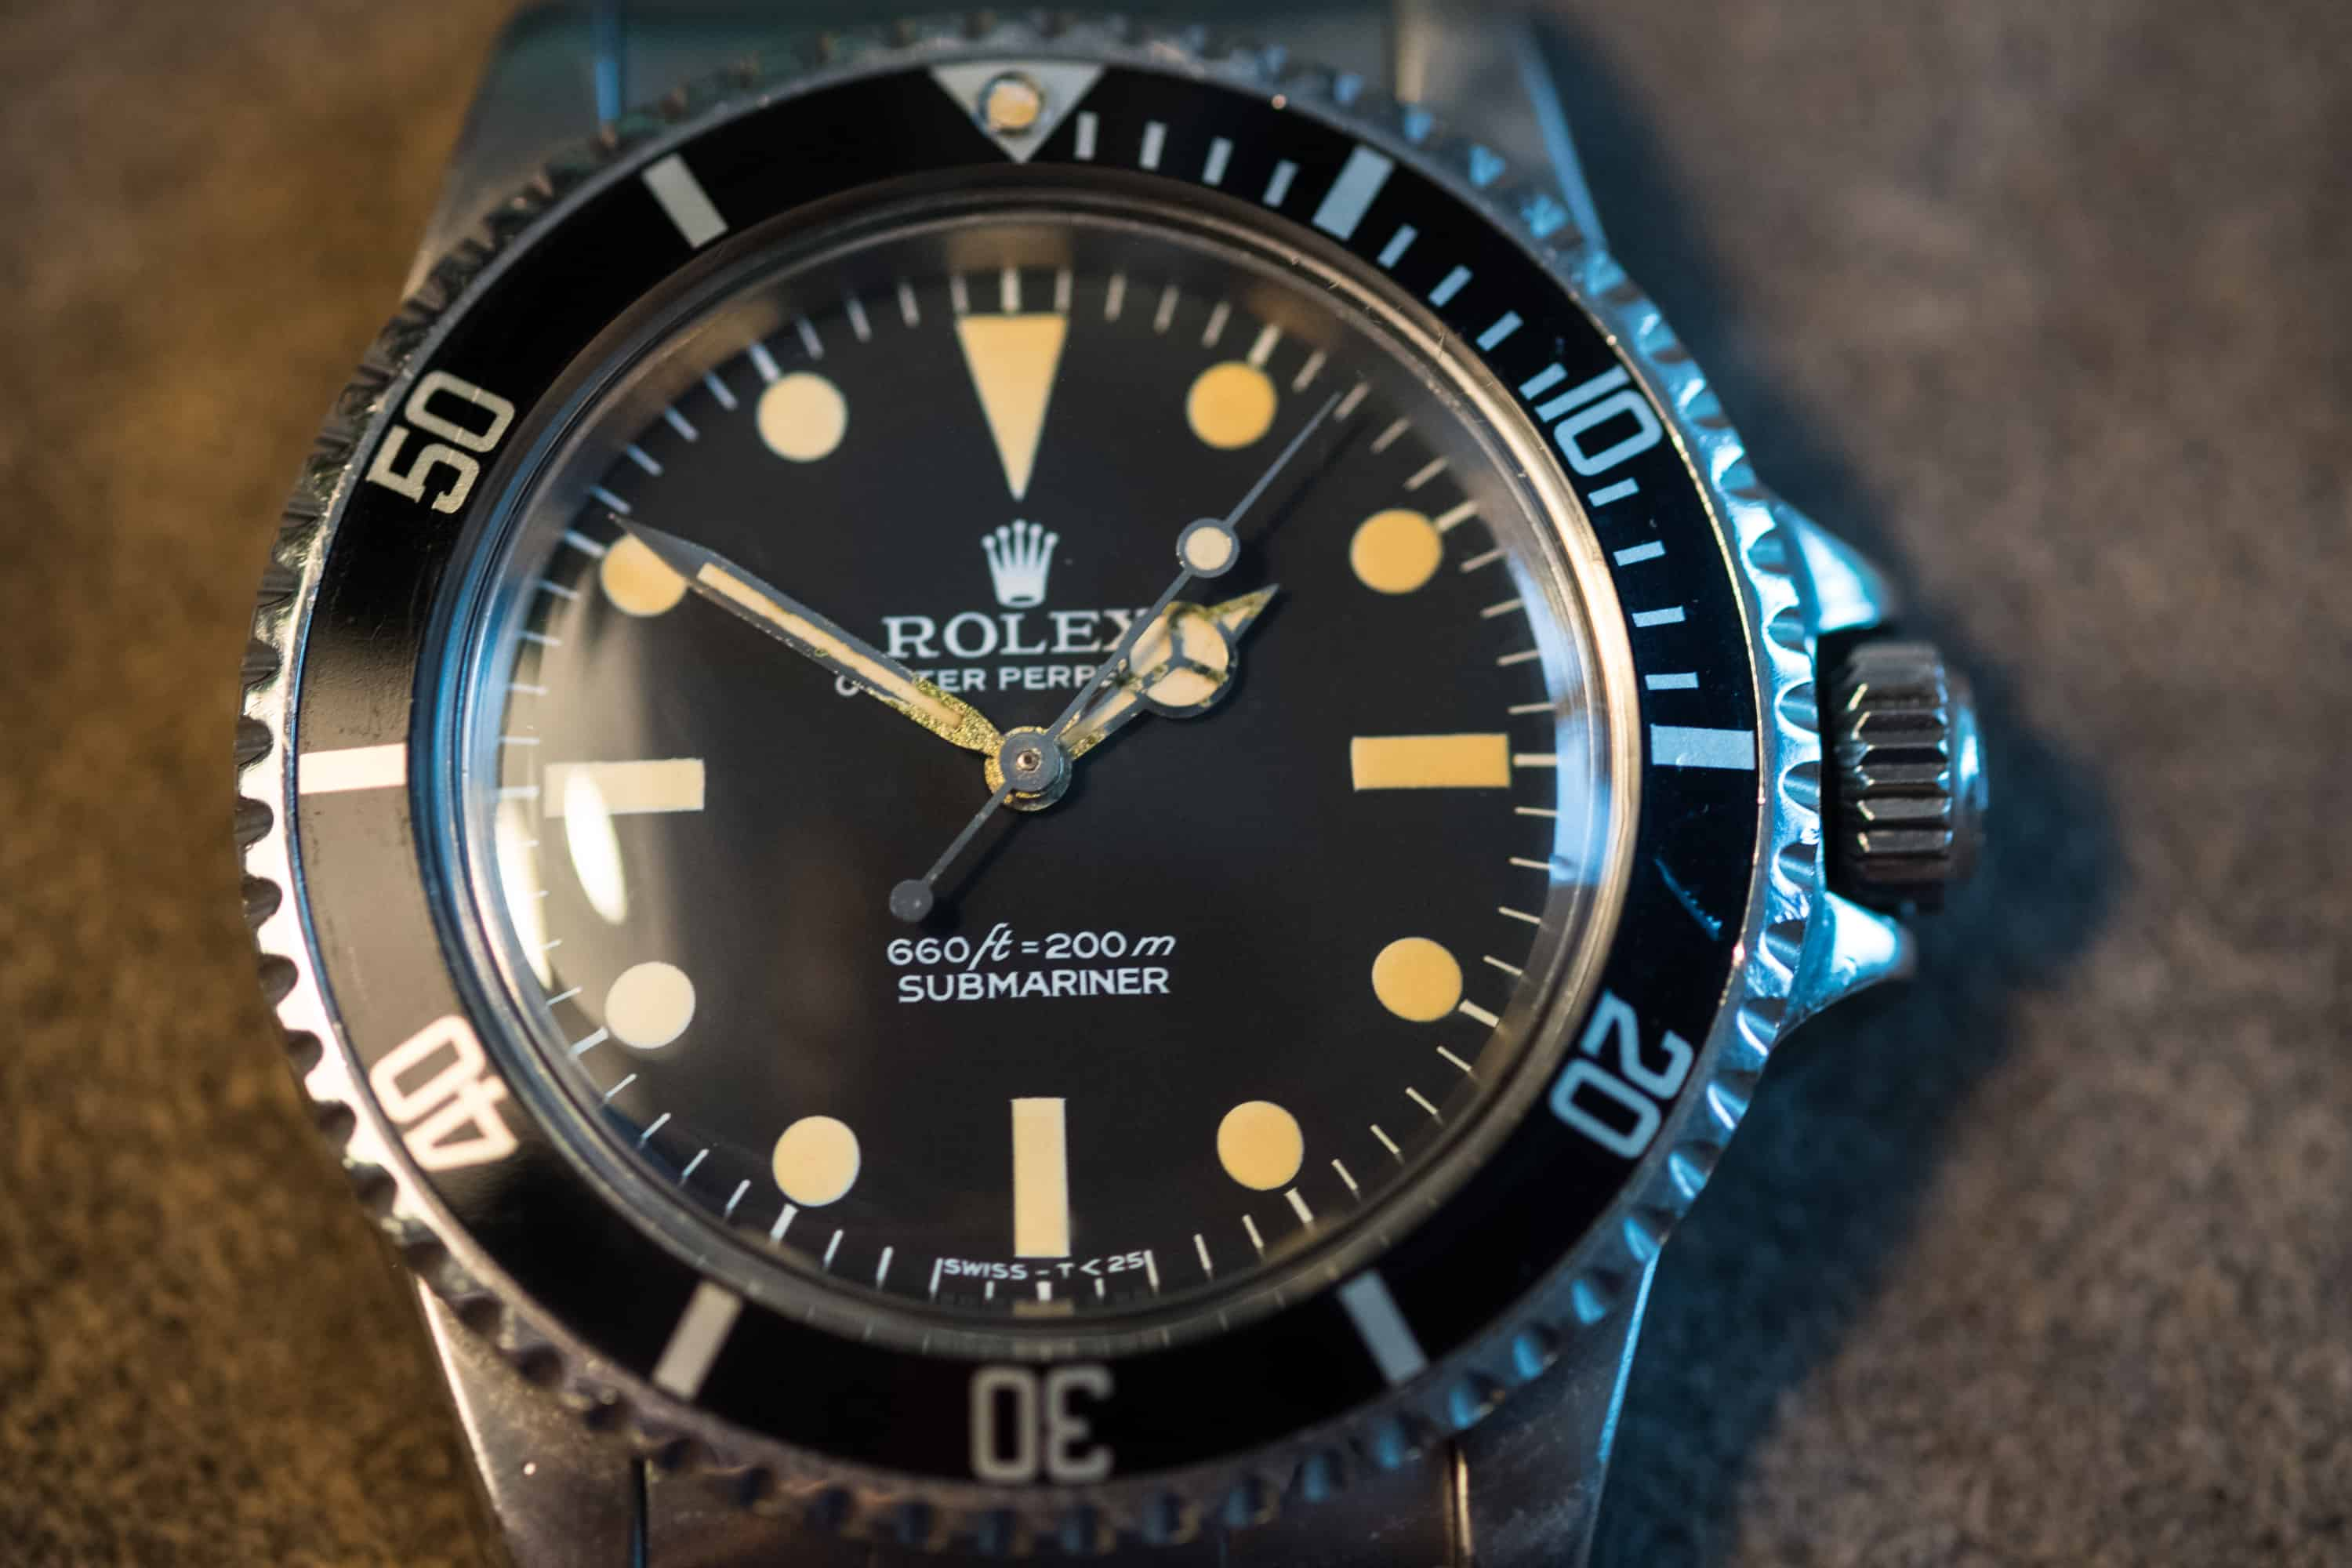 collecting vintage watches rolex 5513 submariner precomex